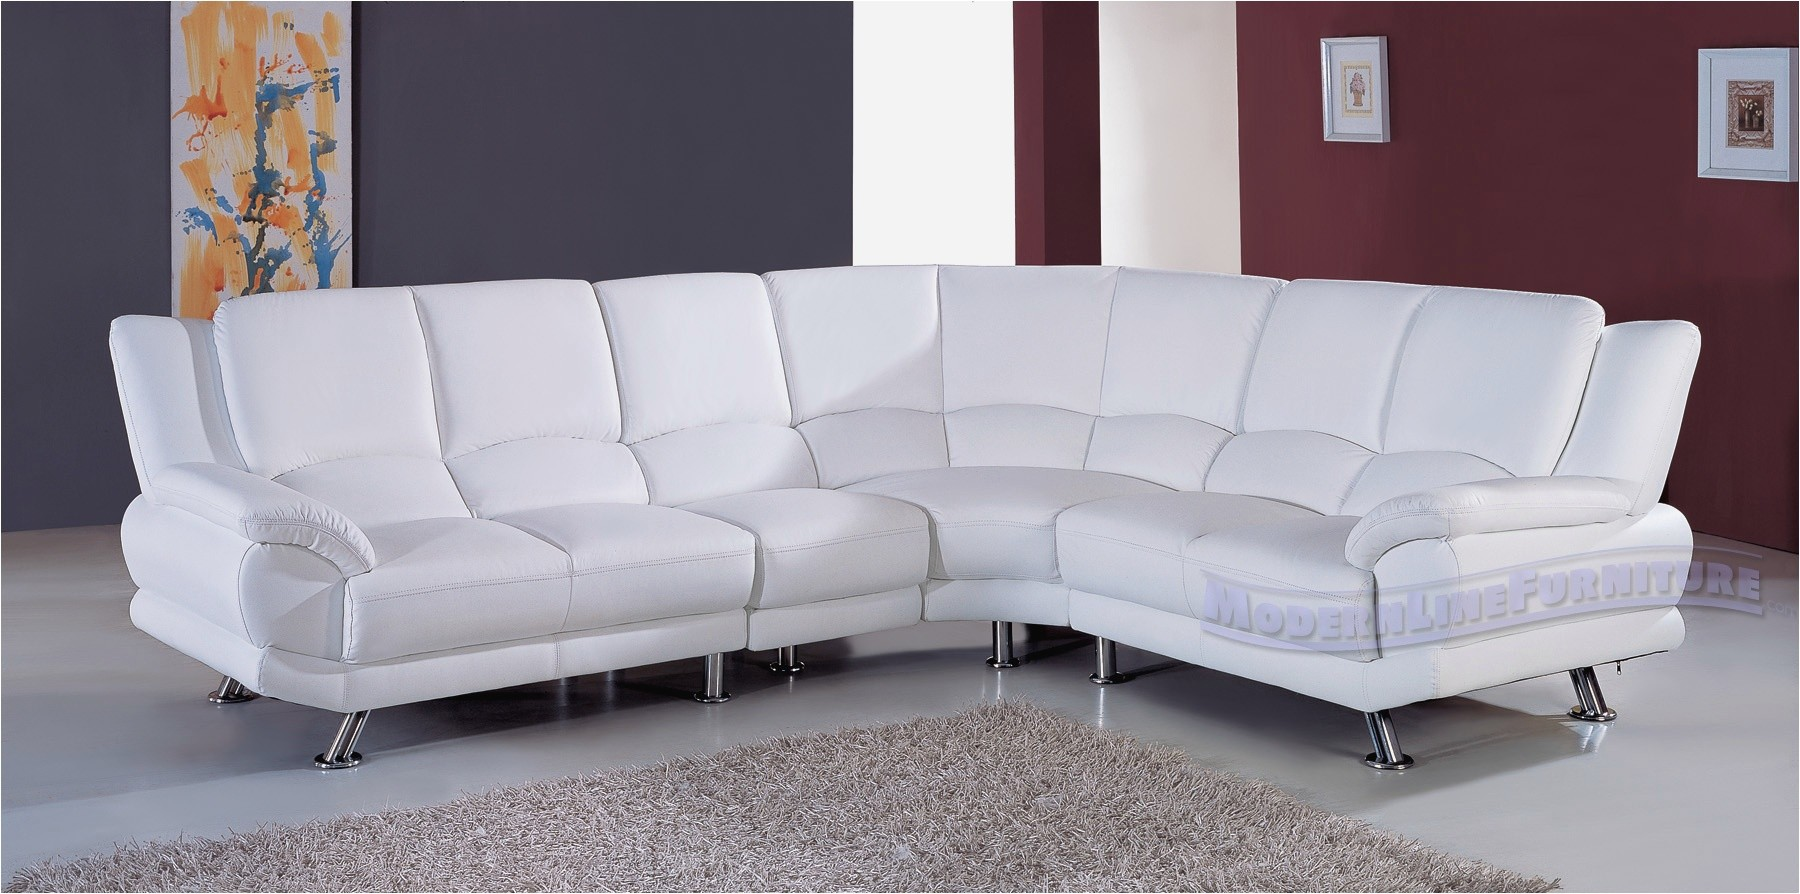 Kuka Sectional Leather Sofa